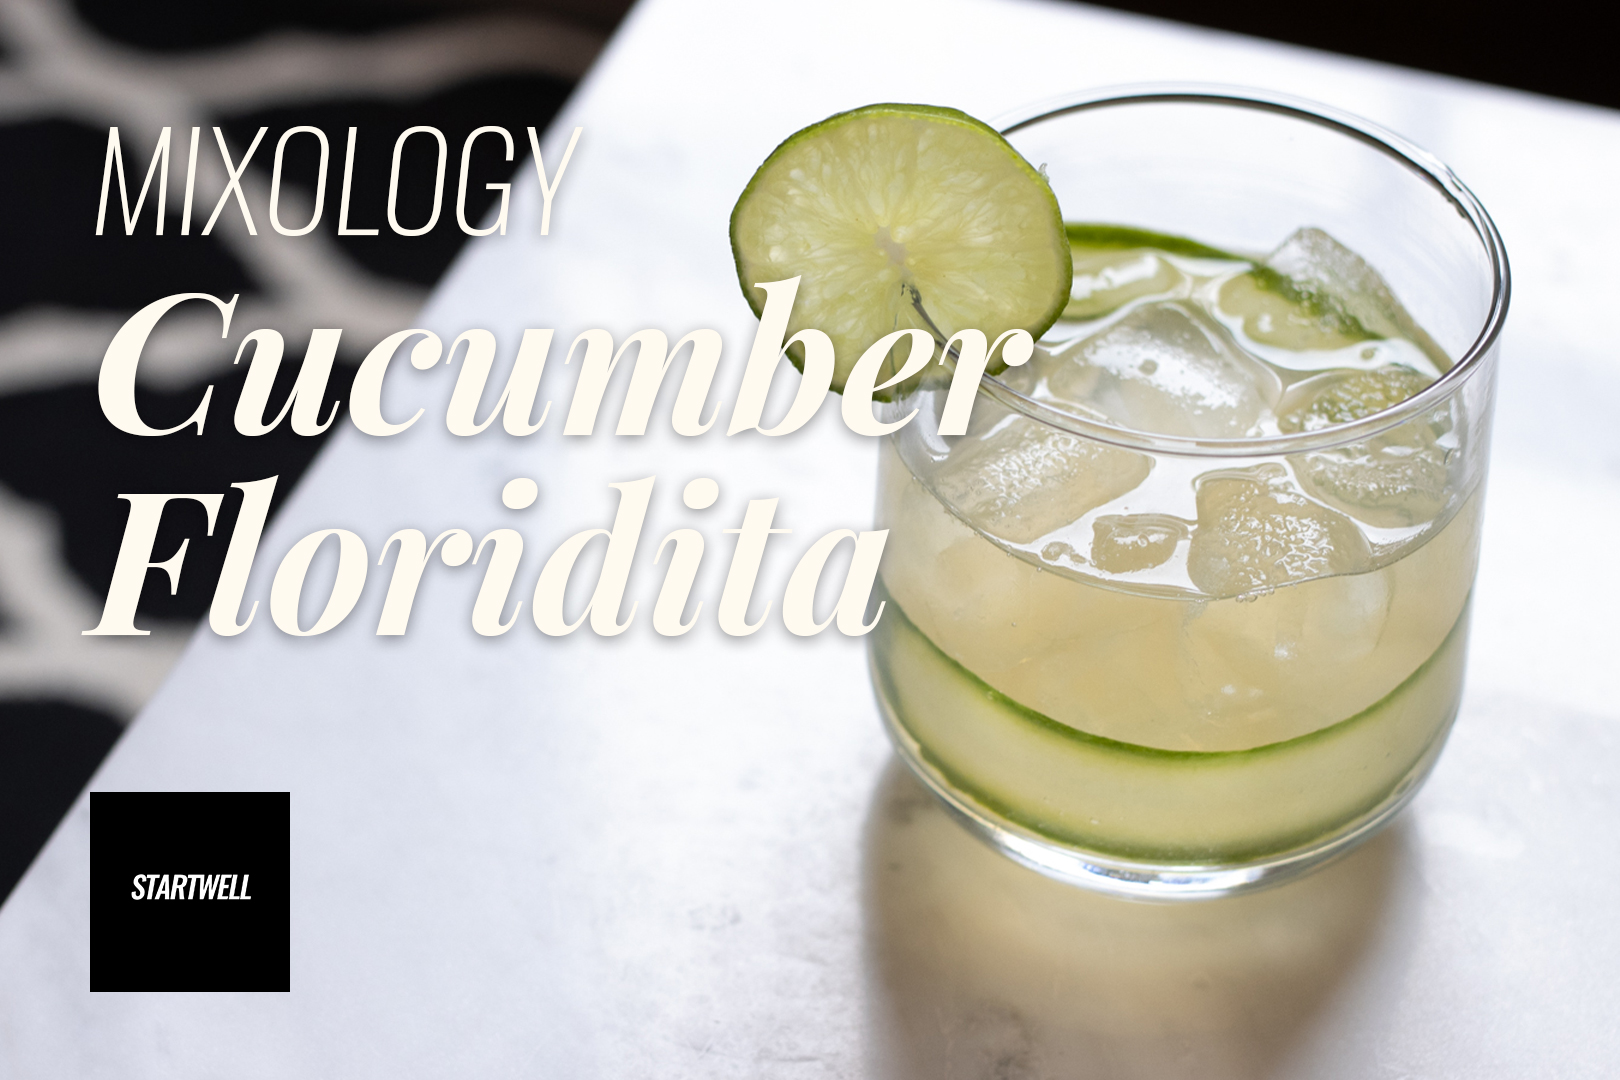 Mixology from StartWell - Cucumber Floridita